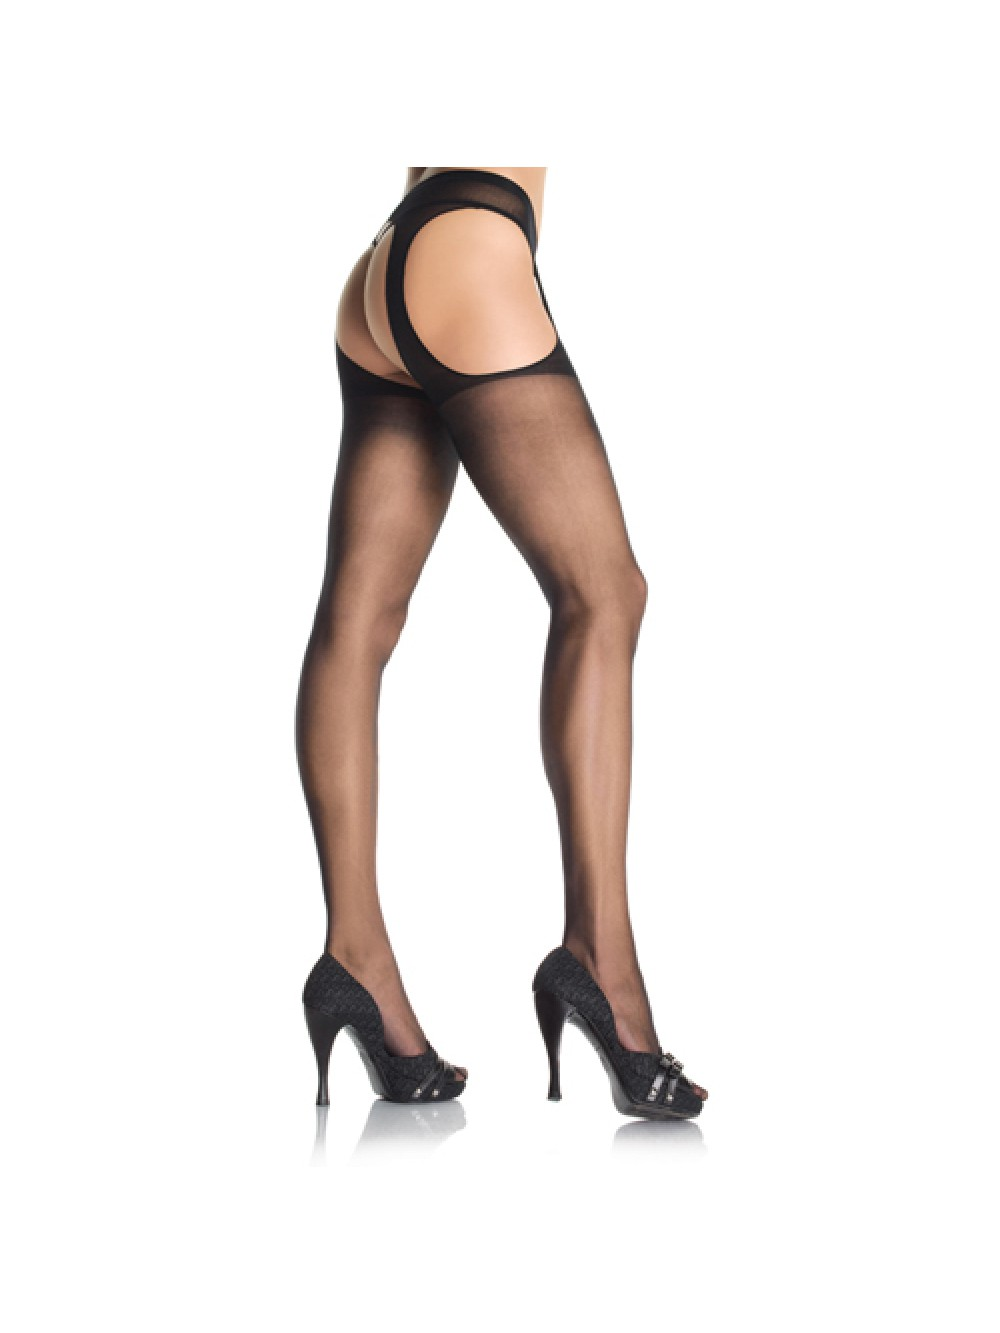 COLLANT VELATO APERTO PLUS SIZE HOSIERY SHEER SUSPENDER BLACK